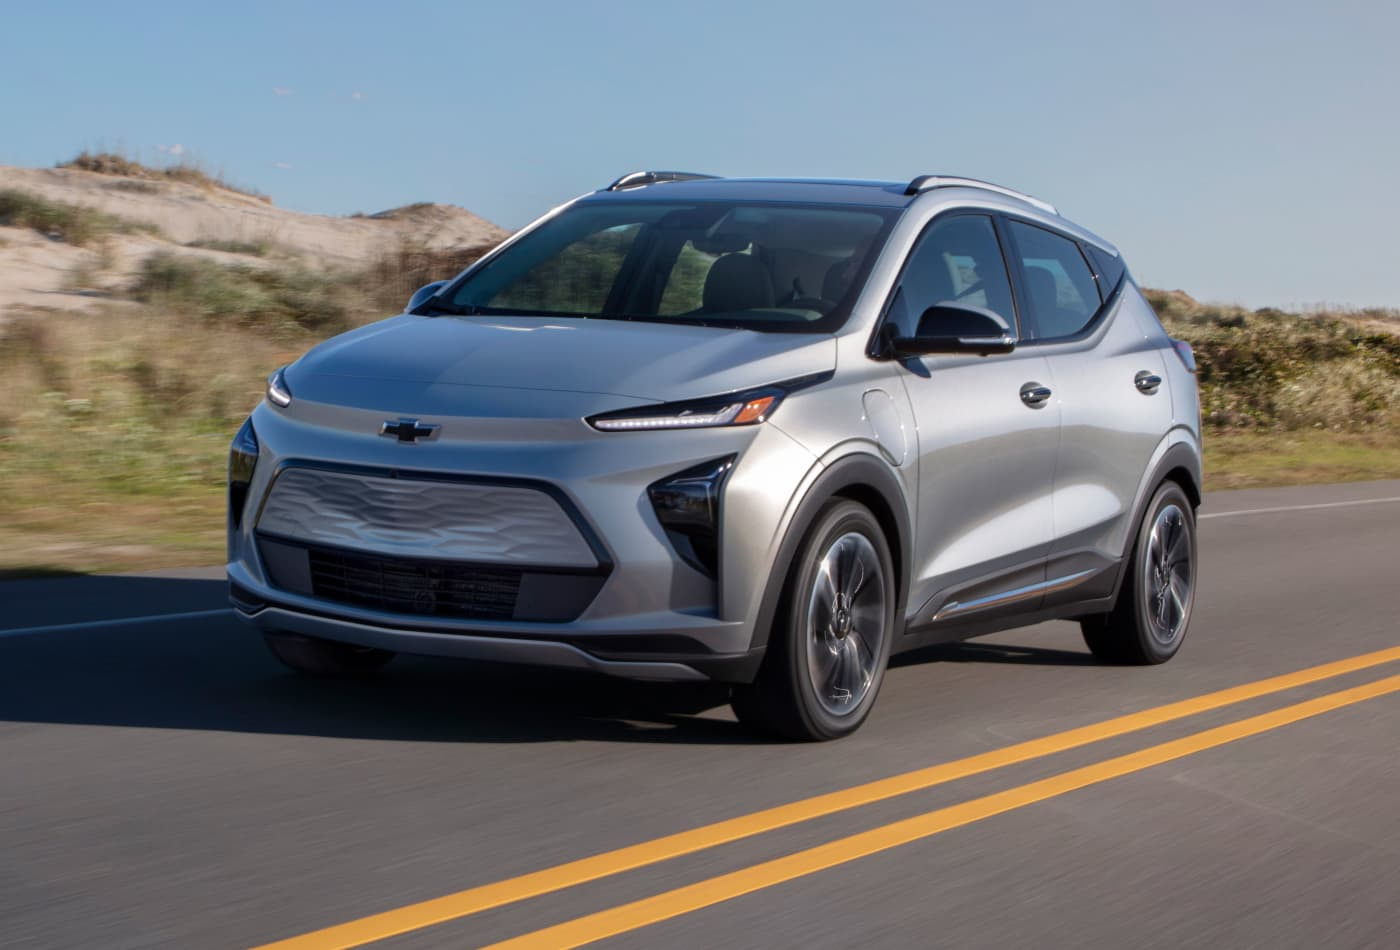 GM's electric vehicle plans begin to take shape with new lower-priced Chevy Bolts